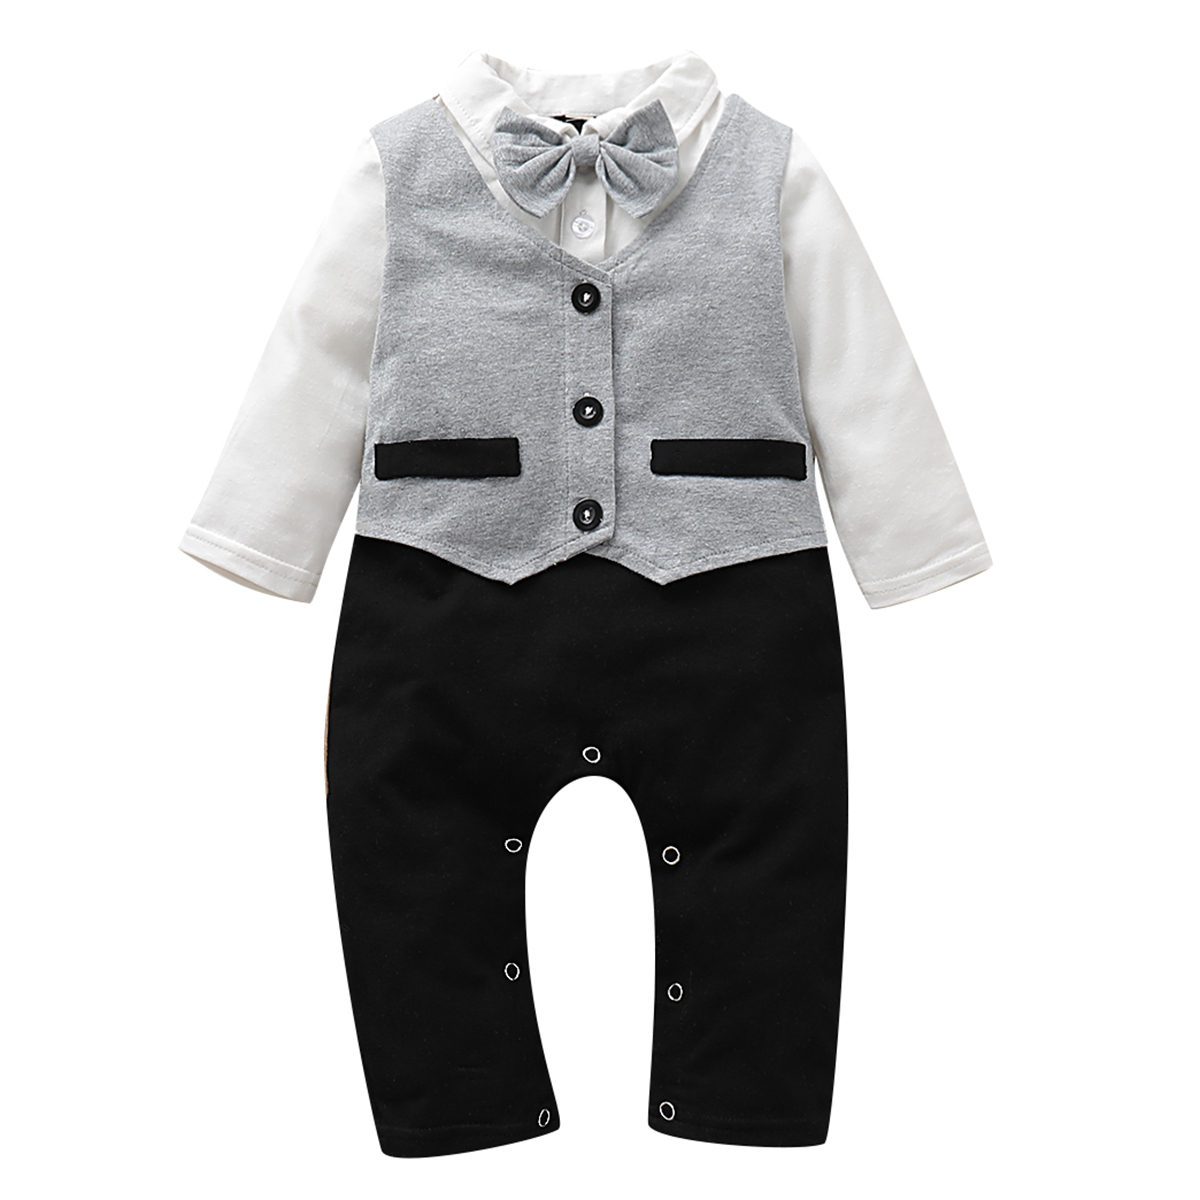 puseky Newborn Baby Boys Gentleman Bowknot Outfits Letters Long Sleeve Romper Pant Hat Clothes Set